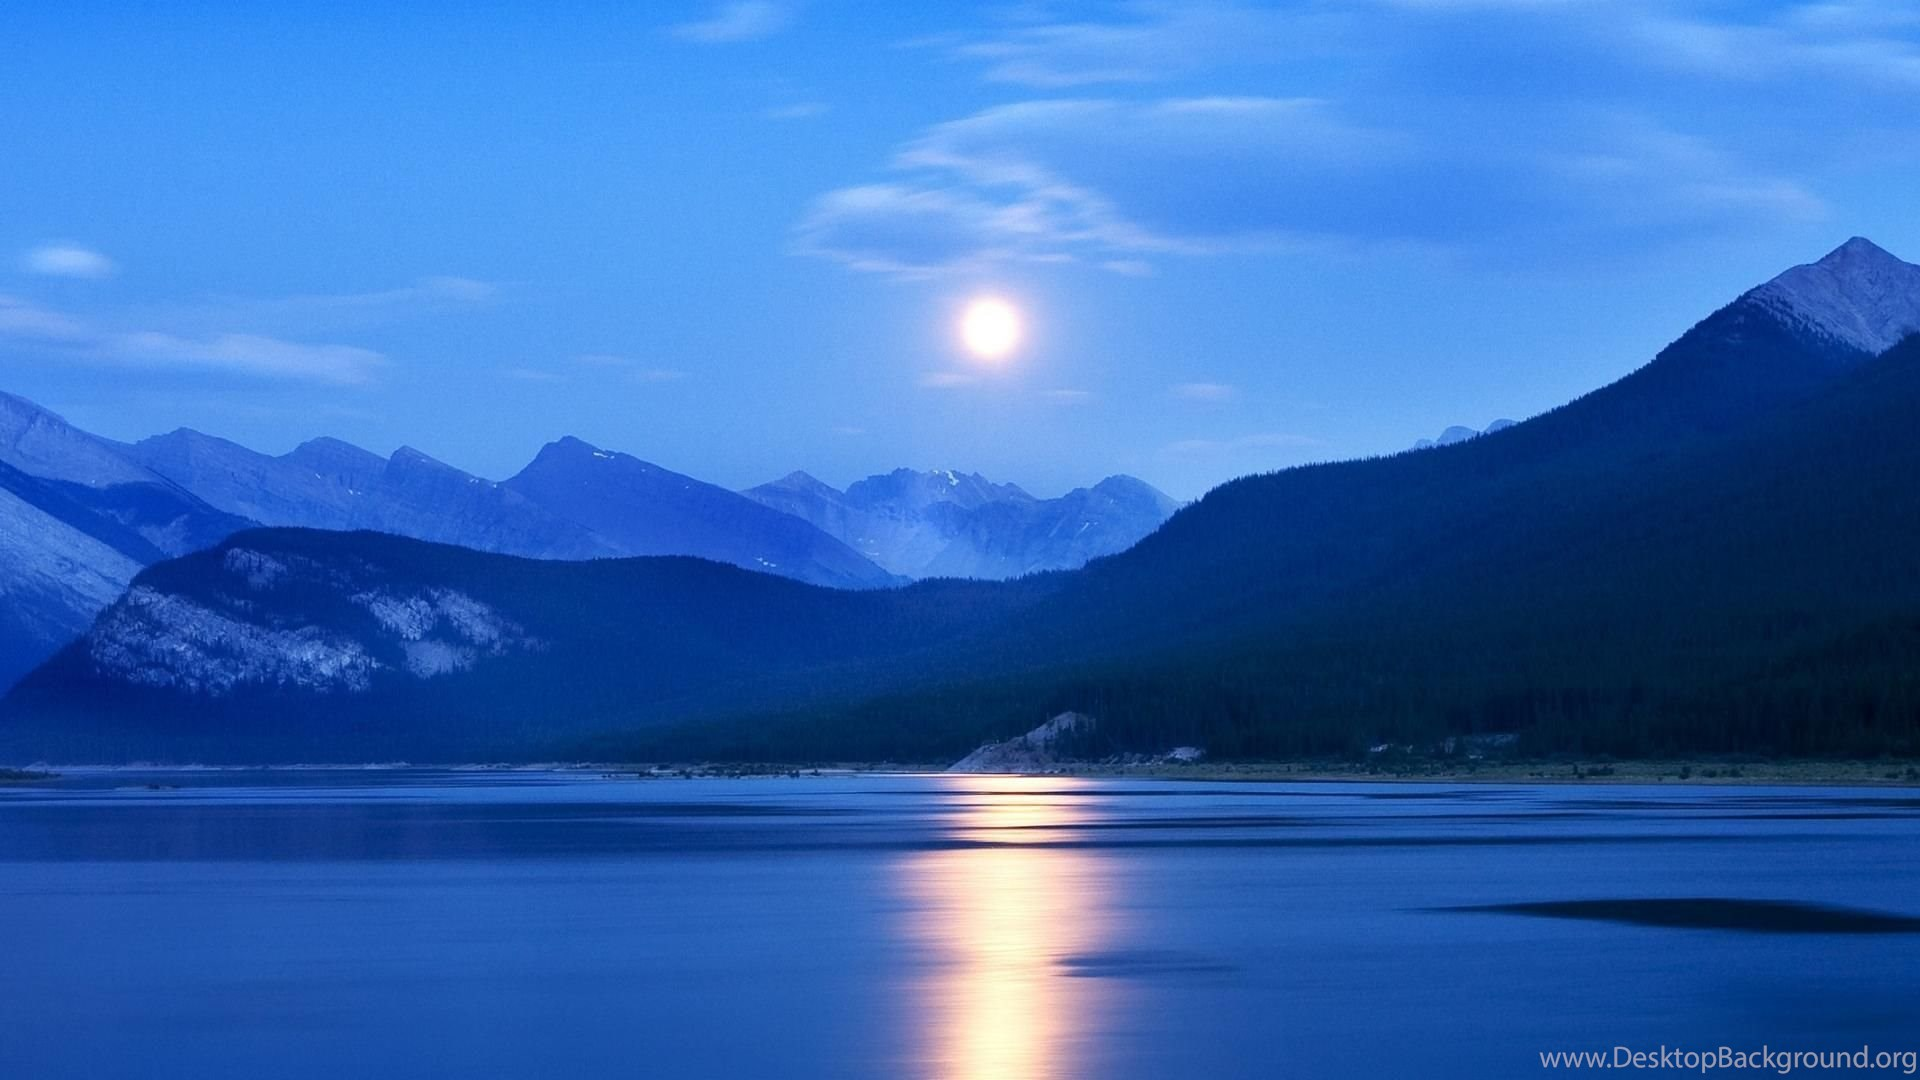 Microsoft windows 8 nature nighttime wallpapers desktop - Background pictures of nature for desktop ...